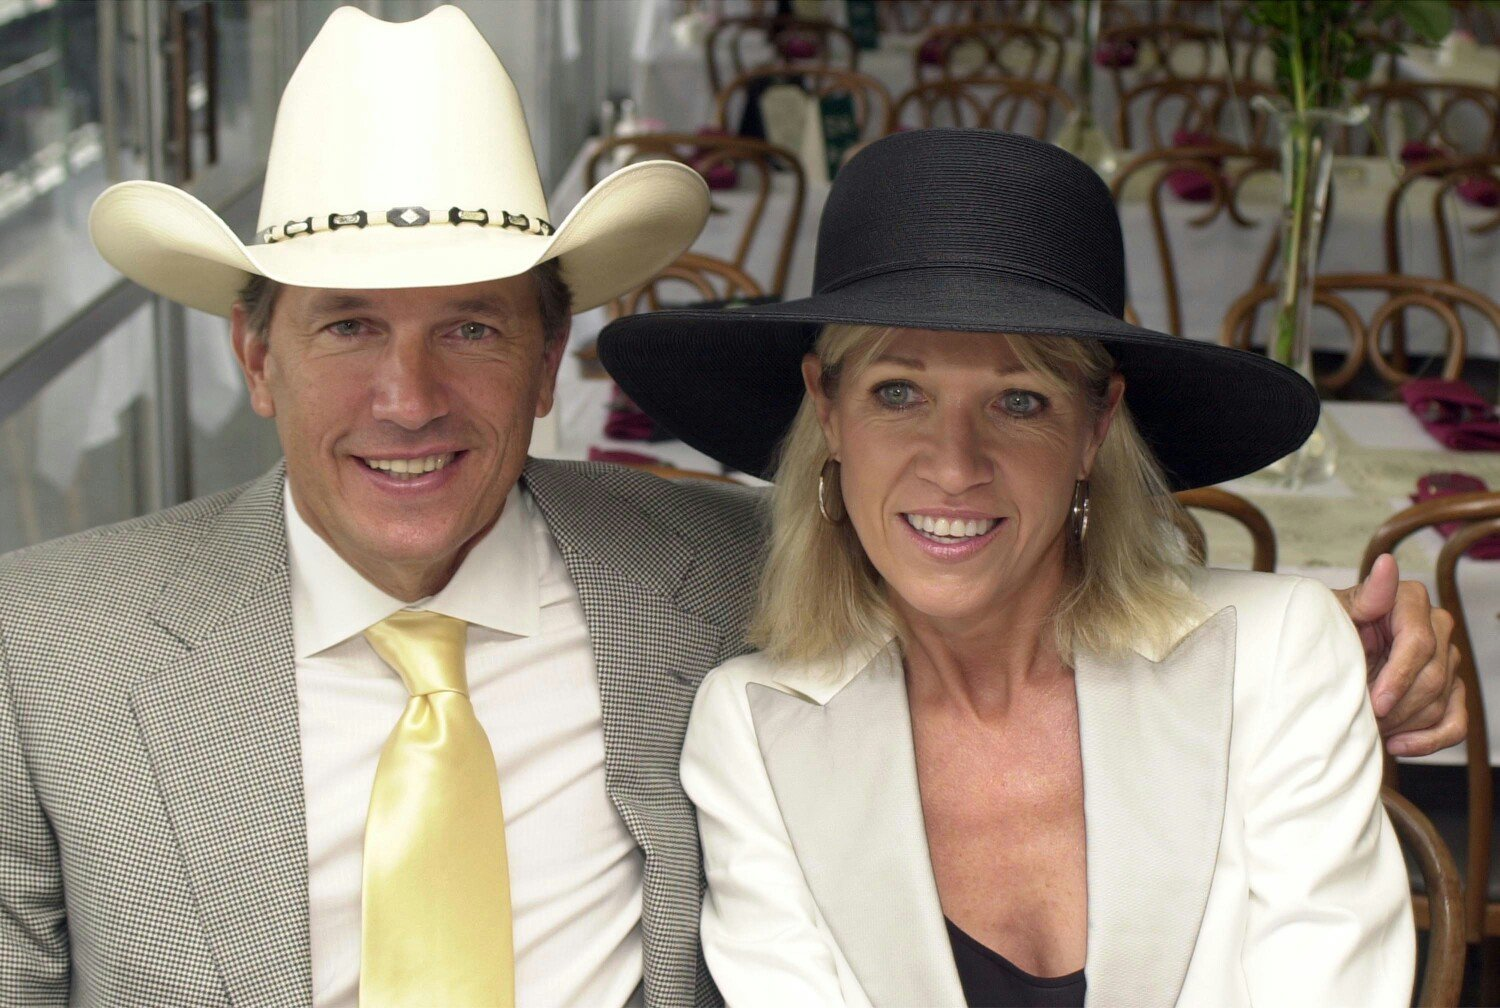 George Strait and his wife, Norma pictured at the 130th Running of the Kentucky Derby, 2004, Louisville, Kentucky.   Photo: Getty Images